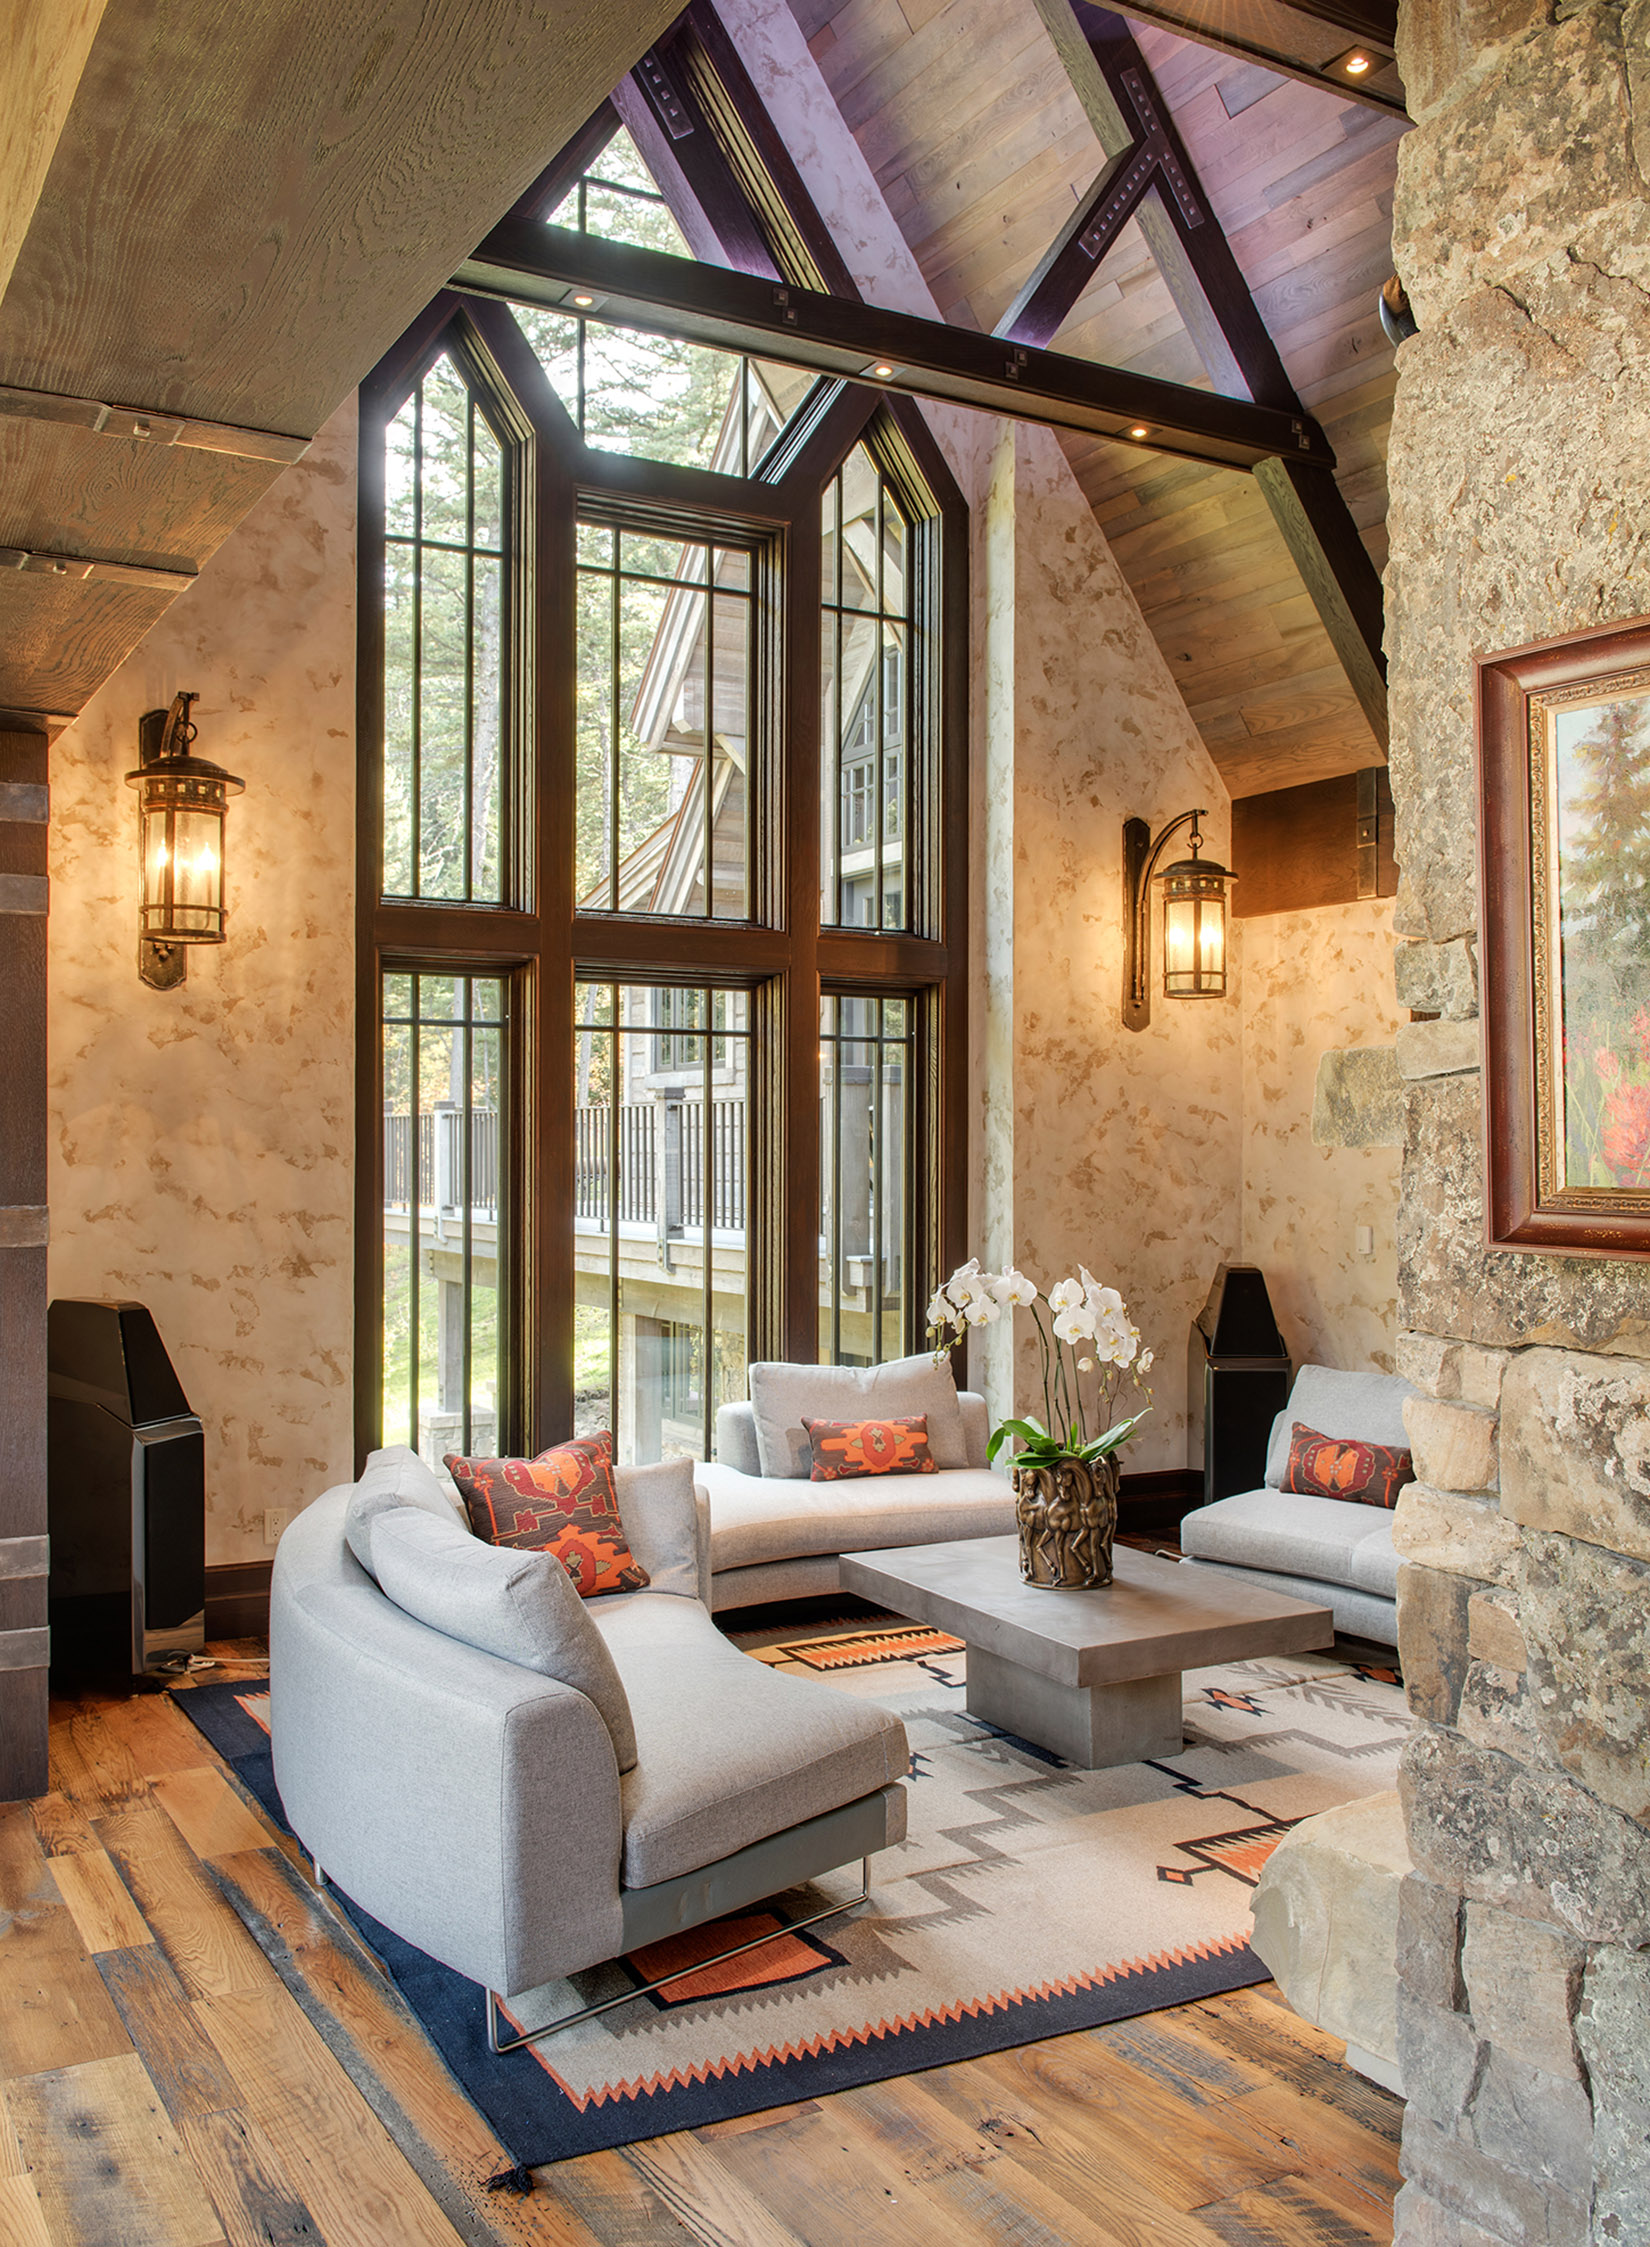 The entry of the home opens up to this stunning great room with floor-to-ceiling windows. I love the furnishings in this room too!